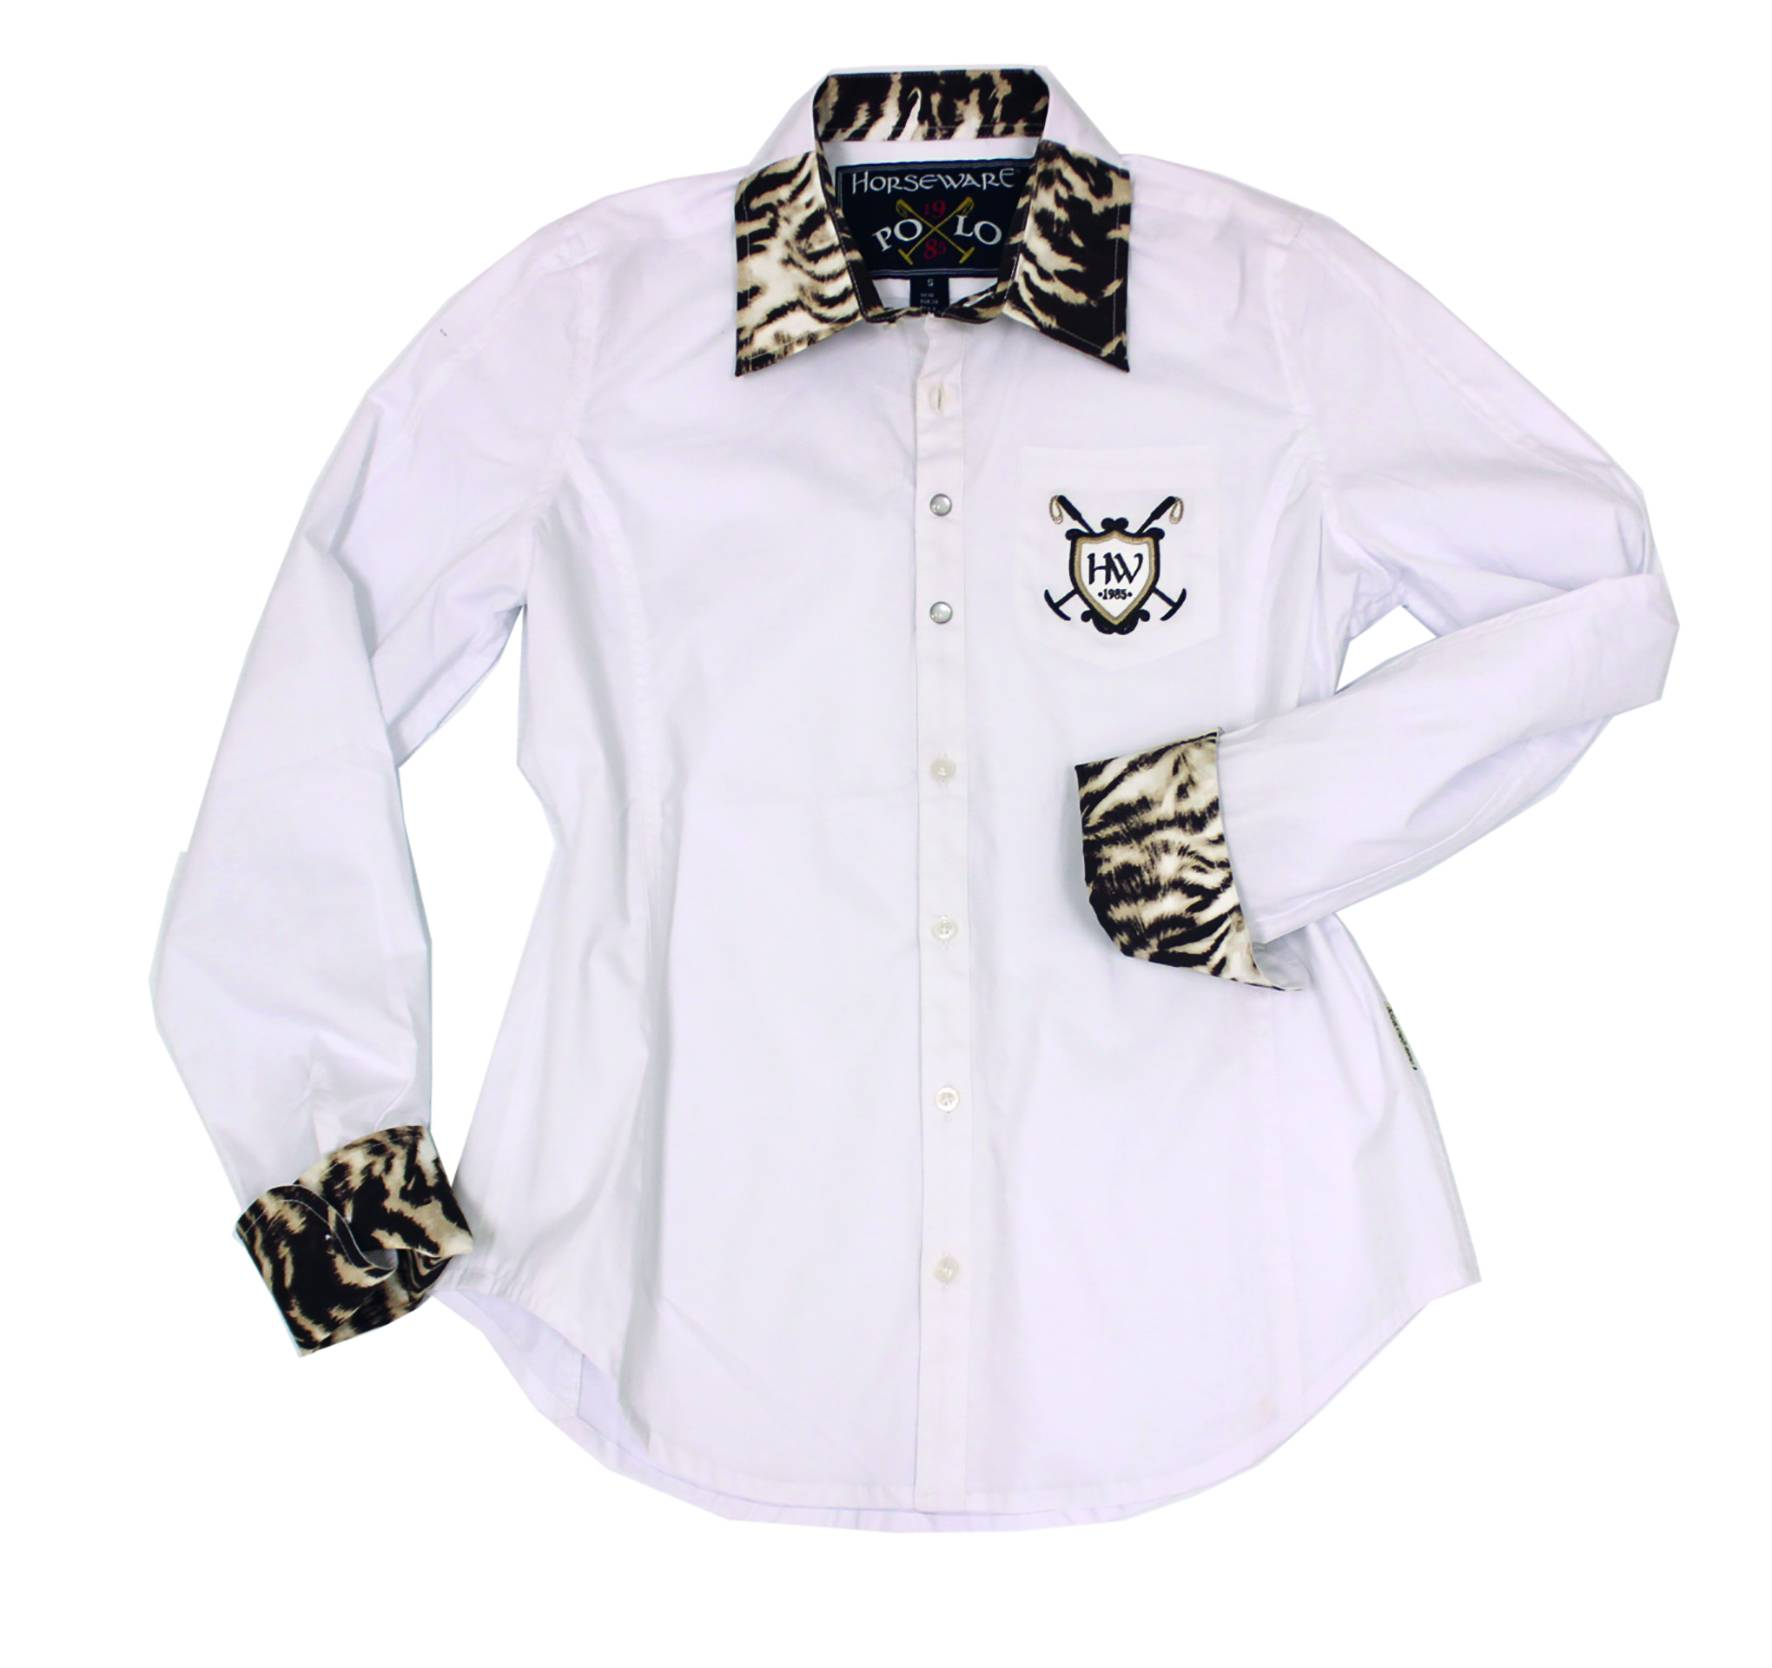 Horseware Polo Aurore Shirt - Ladies, Zebra